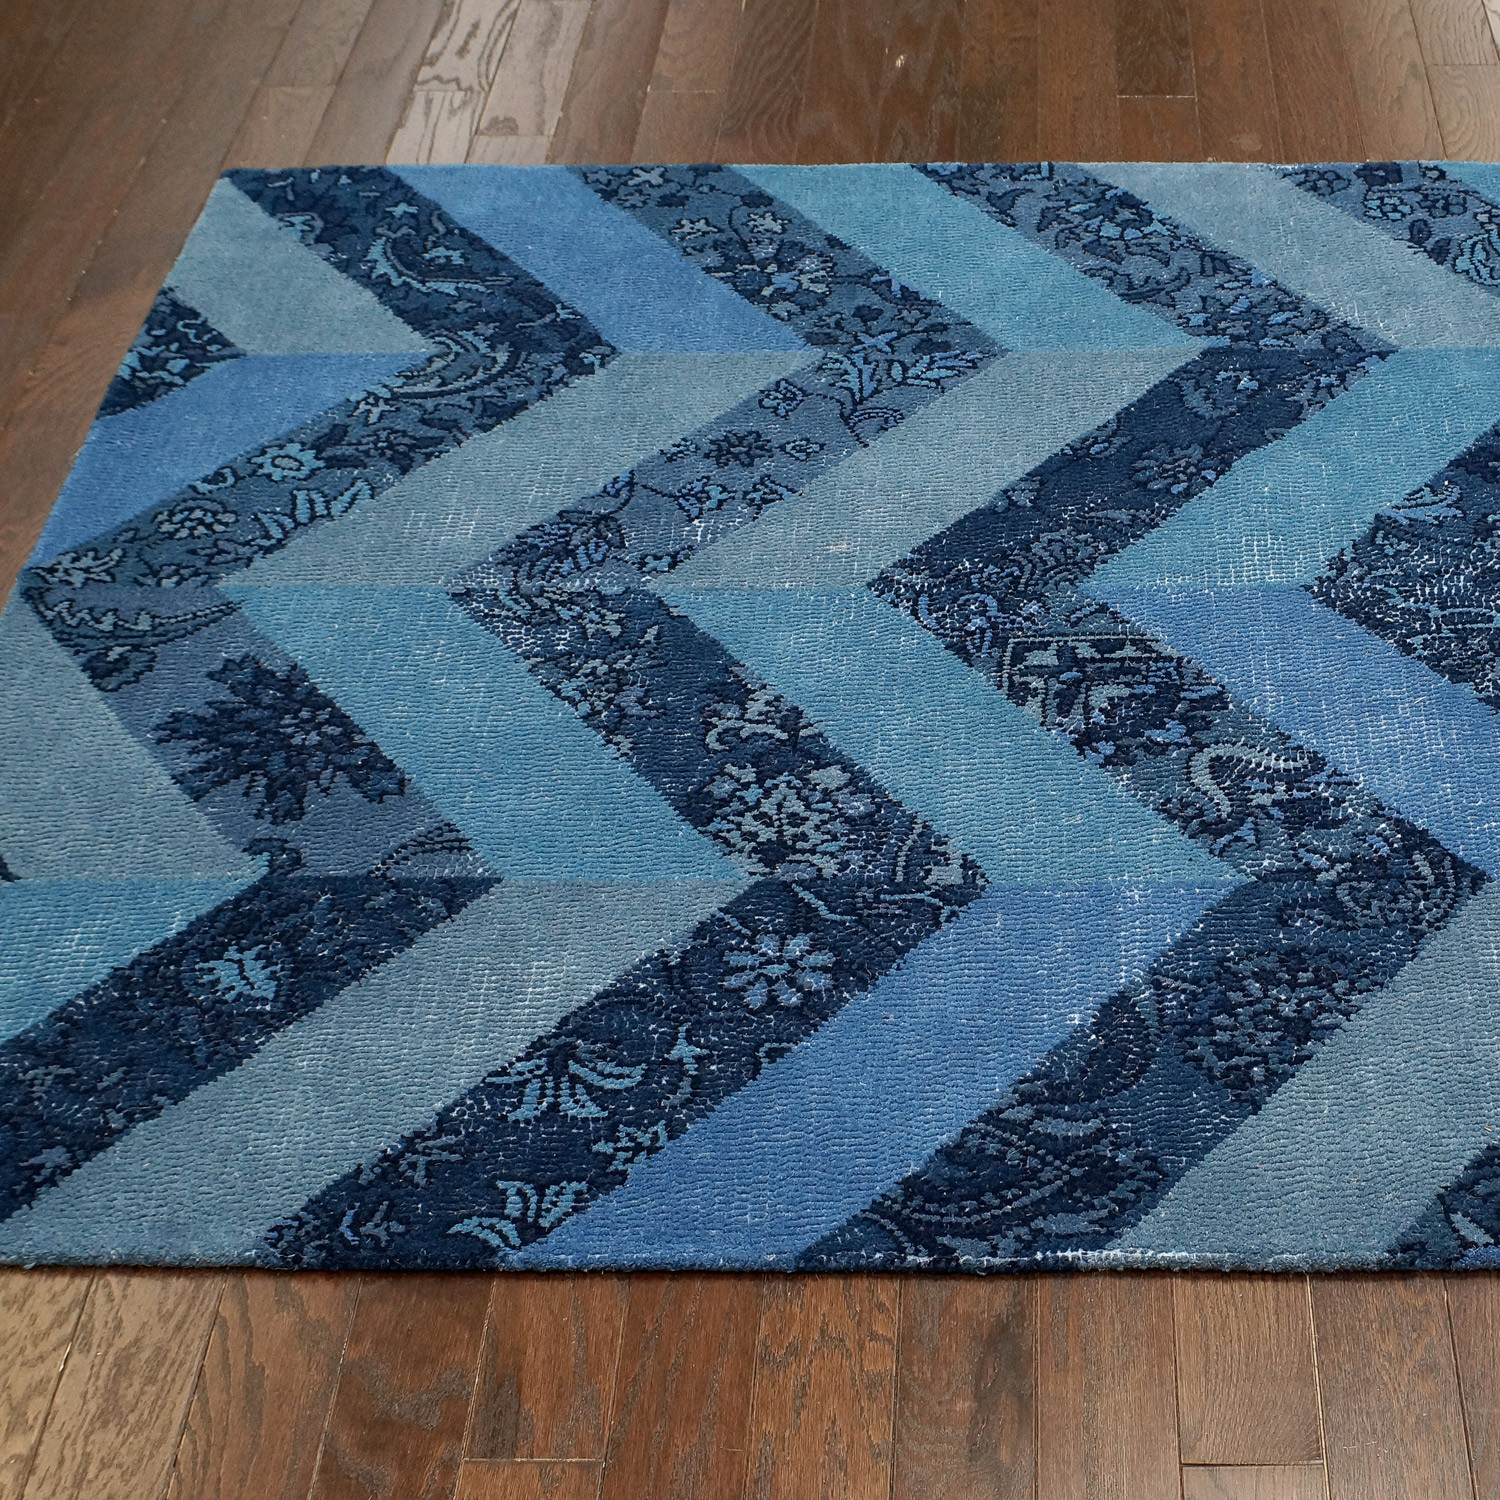 Nuloom Remade Distressed Overdyed Turquoise Area Rug: Duke Overdyed Style Tufted Area Rug // Blue (5'L X 8'W